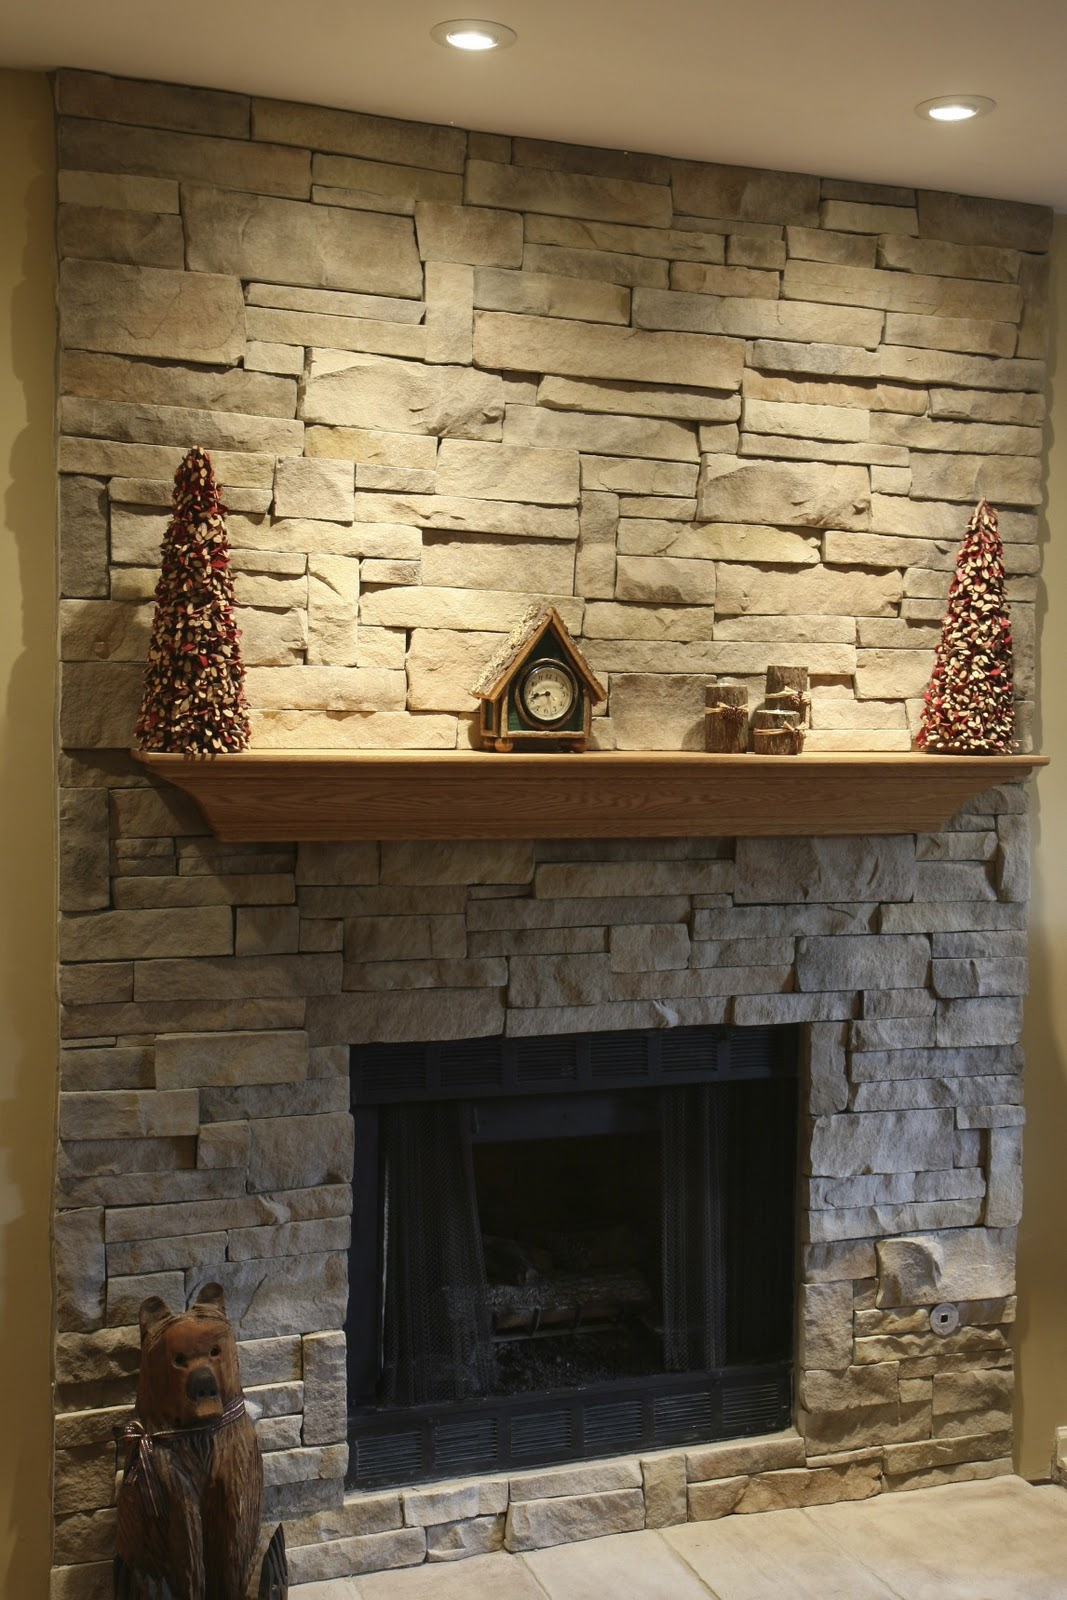 North star stone stone fireplaces stone exteriors ledge stone for your new stone fireplace - Images of stone fireplaces ...